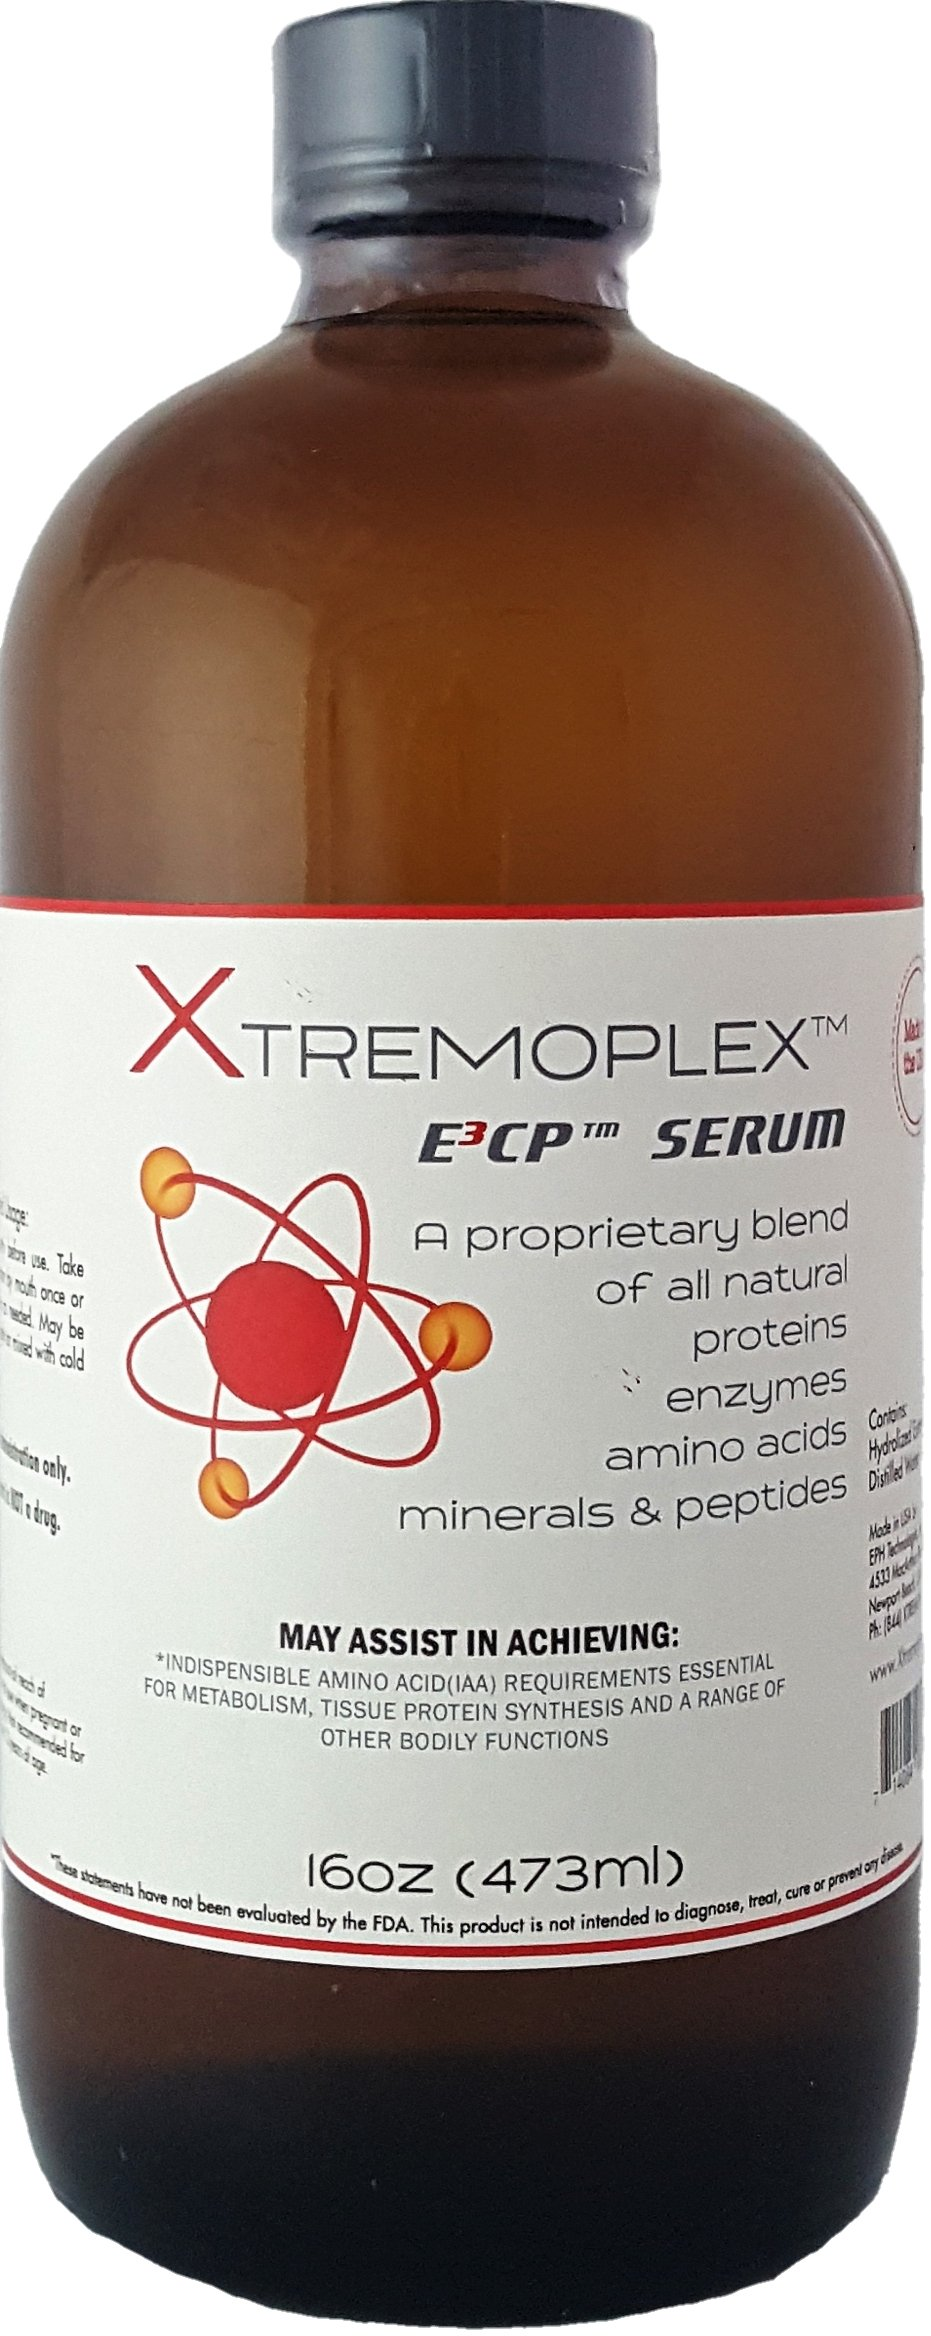 Xtremoplex E3CP Serum by EPH Technologies   Proprietary Blend of All Natural Proteins, Enzymes, Amino Acids, Minerals and Peptides   Made in the USA (16oz)